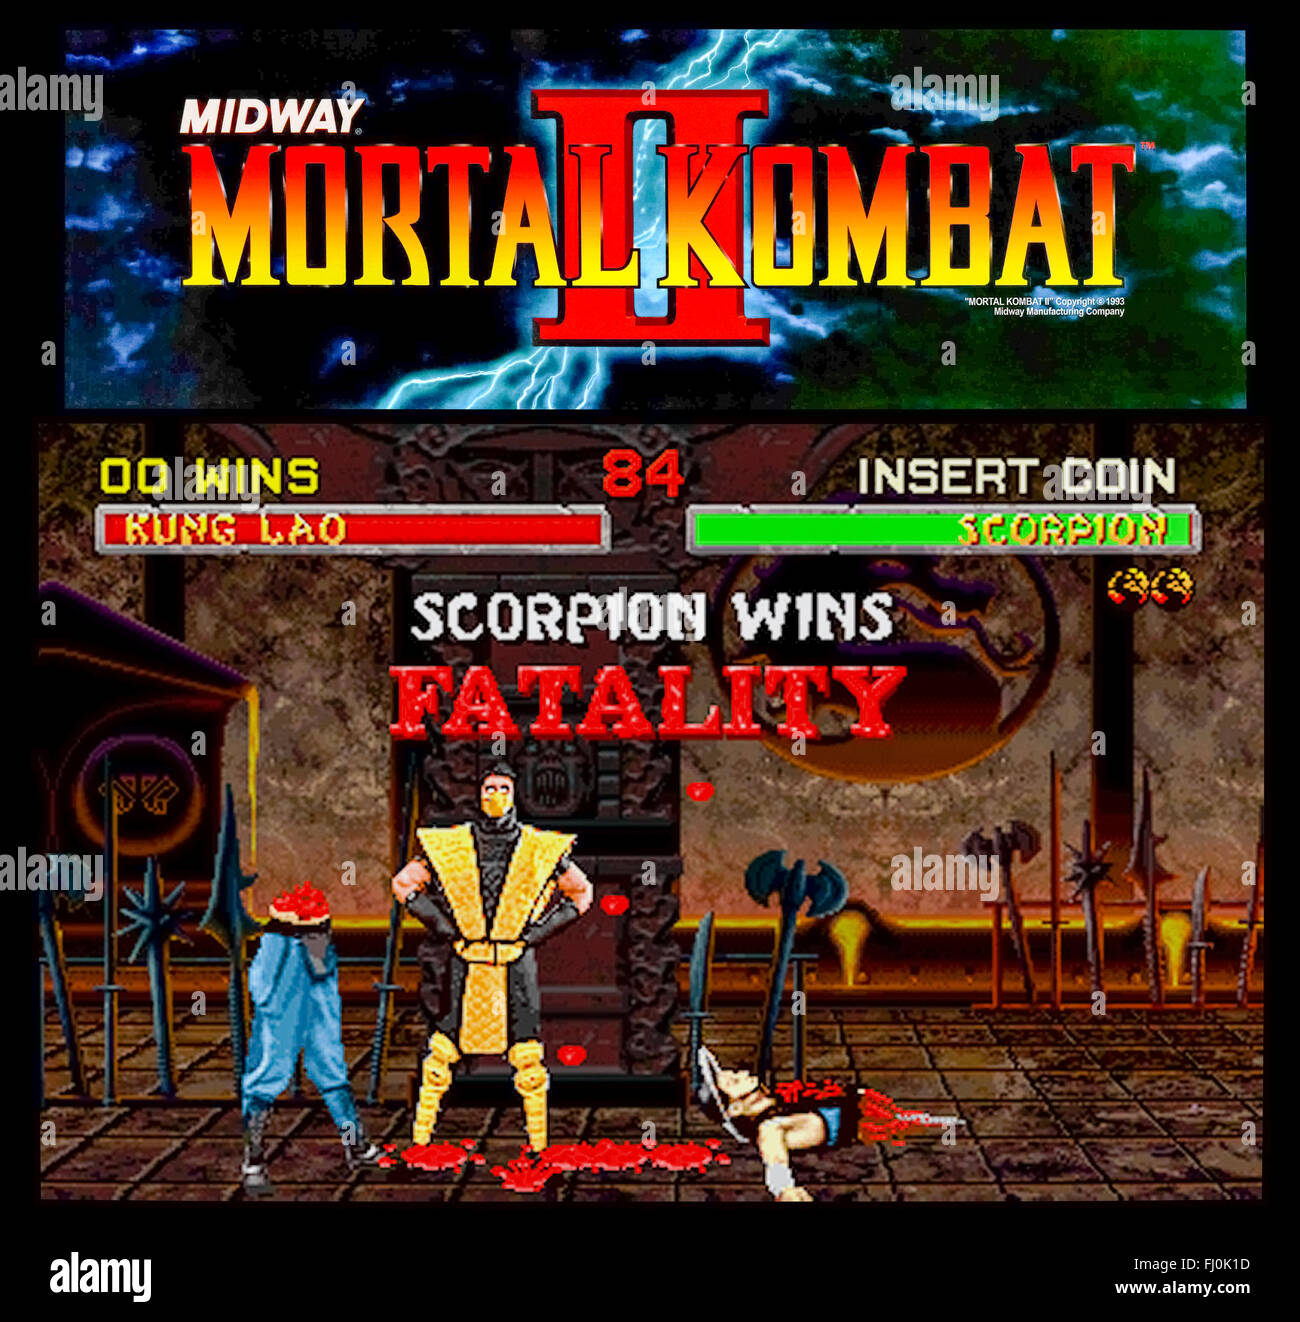 'Mortal Kombat II' released in 1993 by Midway Games, this sequel to the original Mortal Kombat introduced - Stock Image